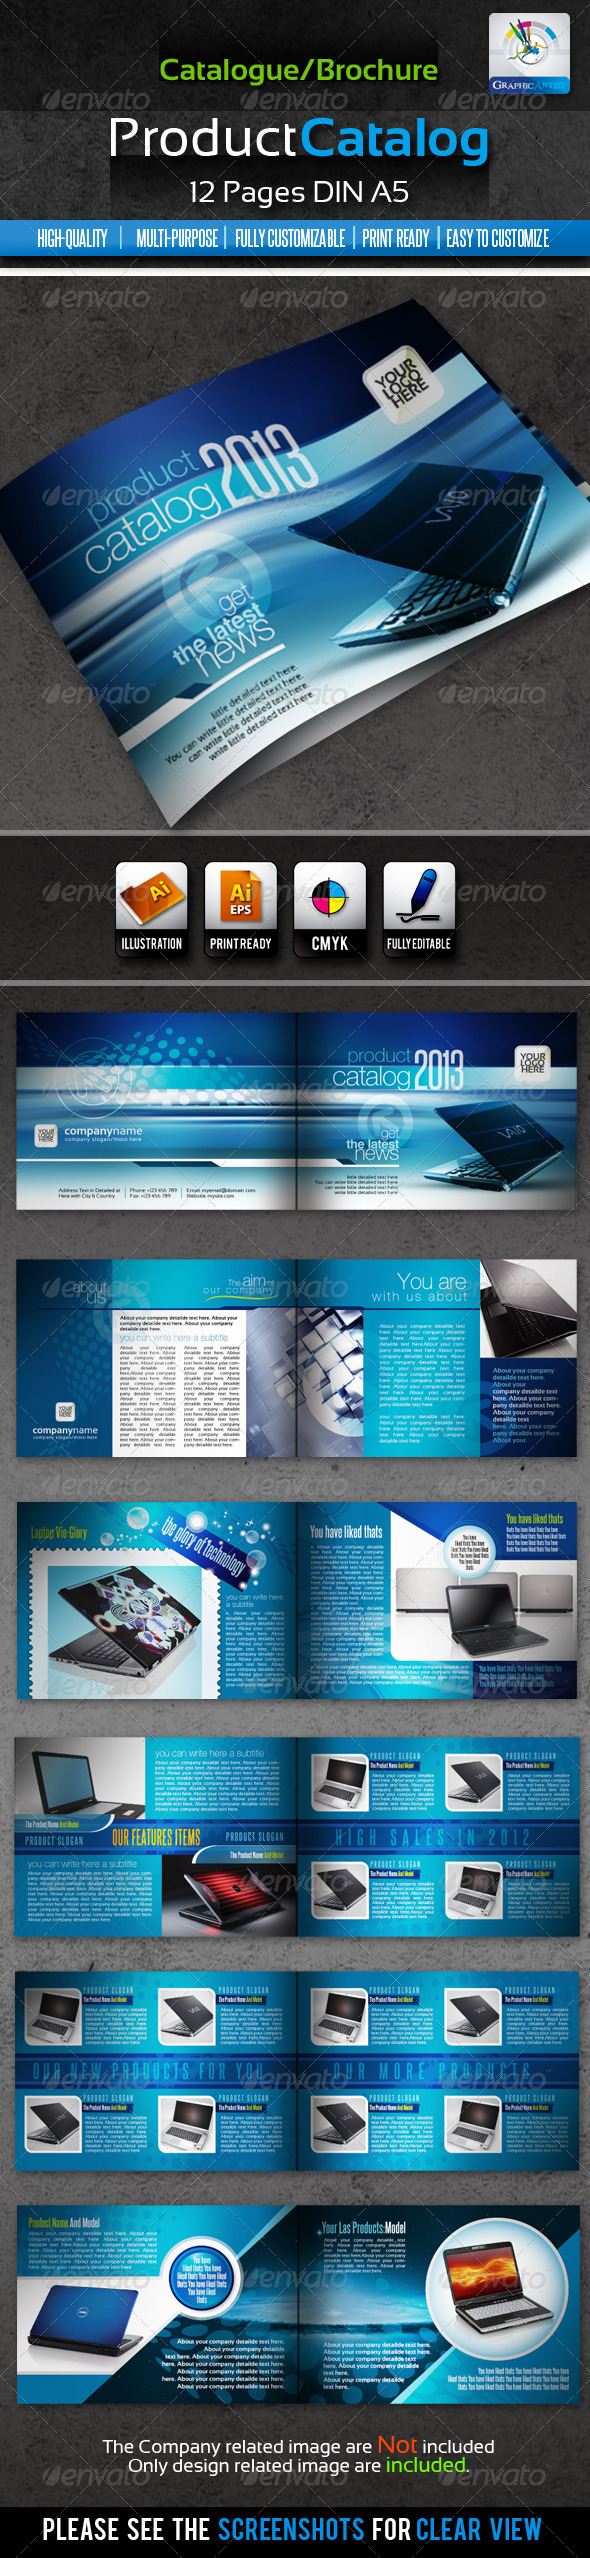 GraphicRiver Corporate Product Catalogue Brochure 12pages 1598202